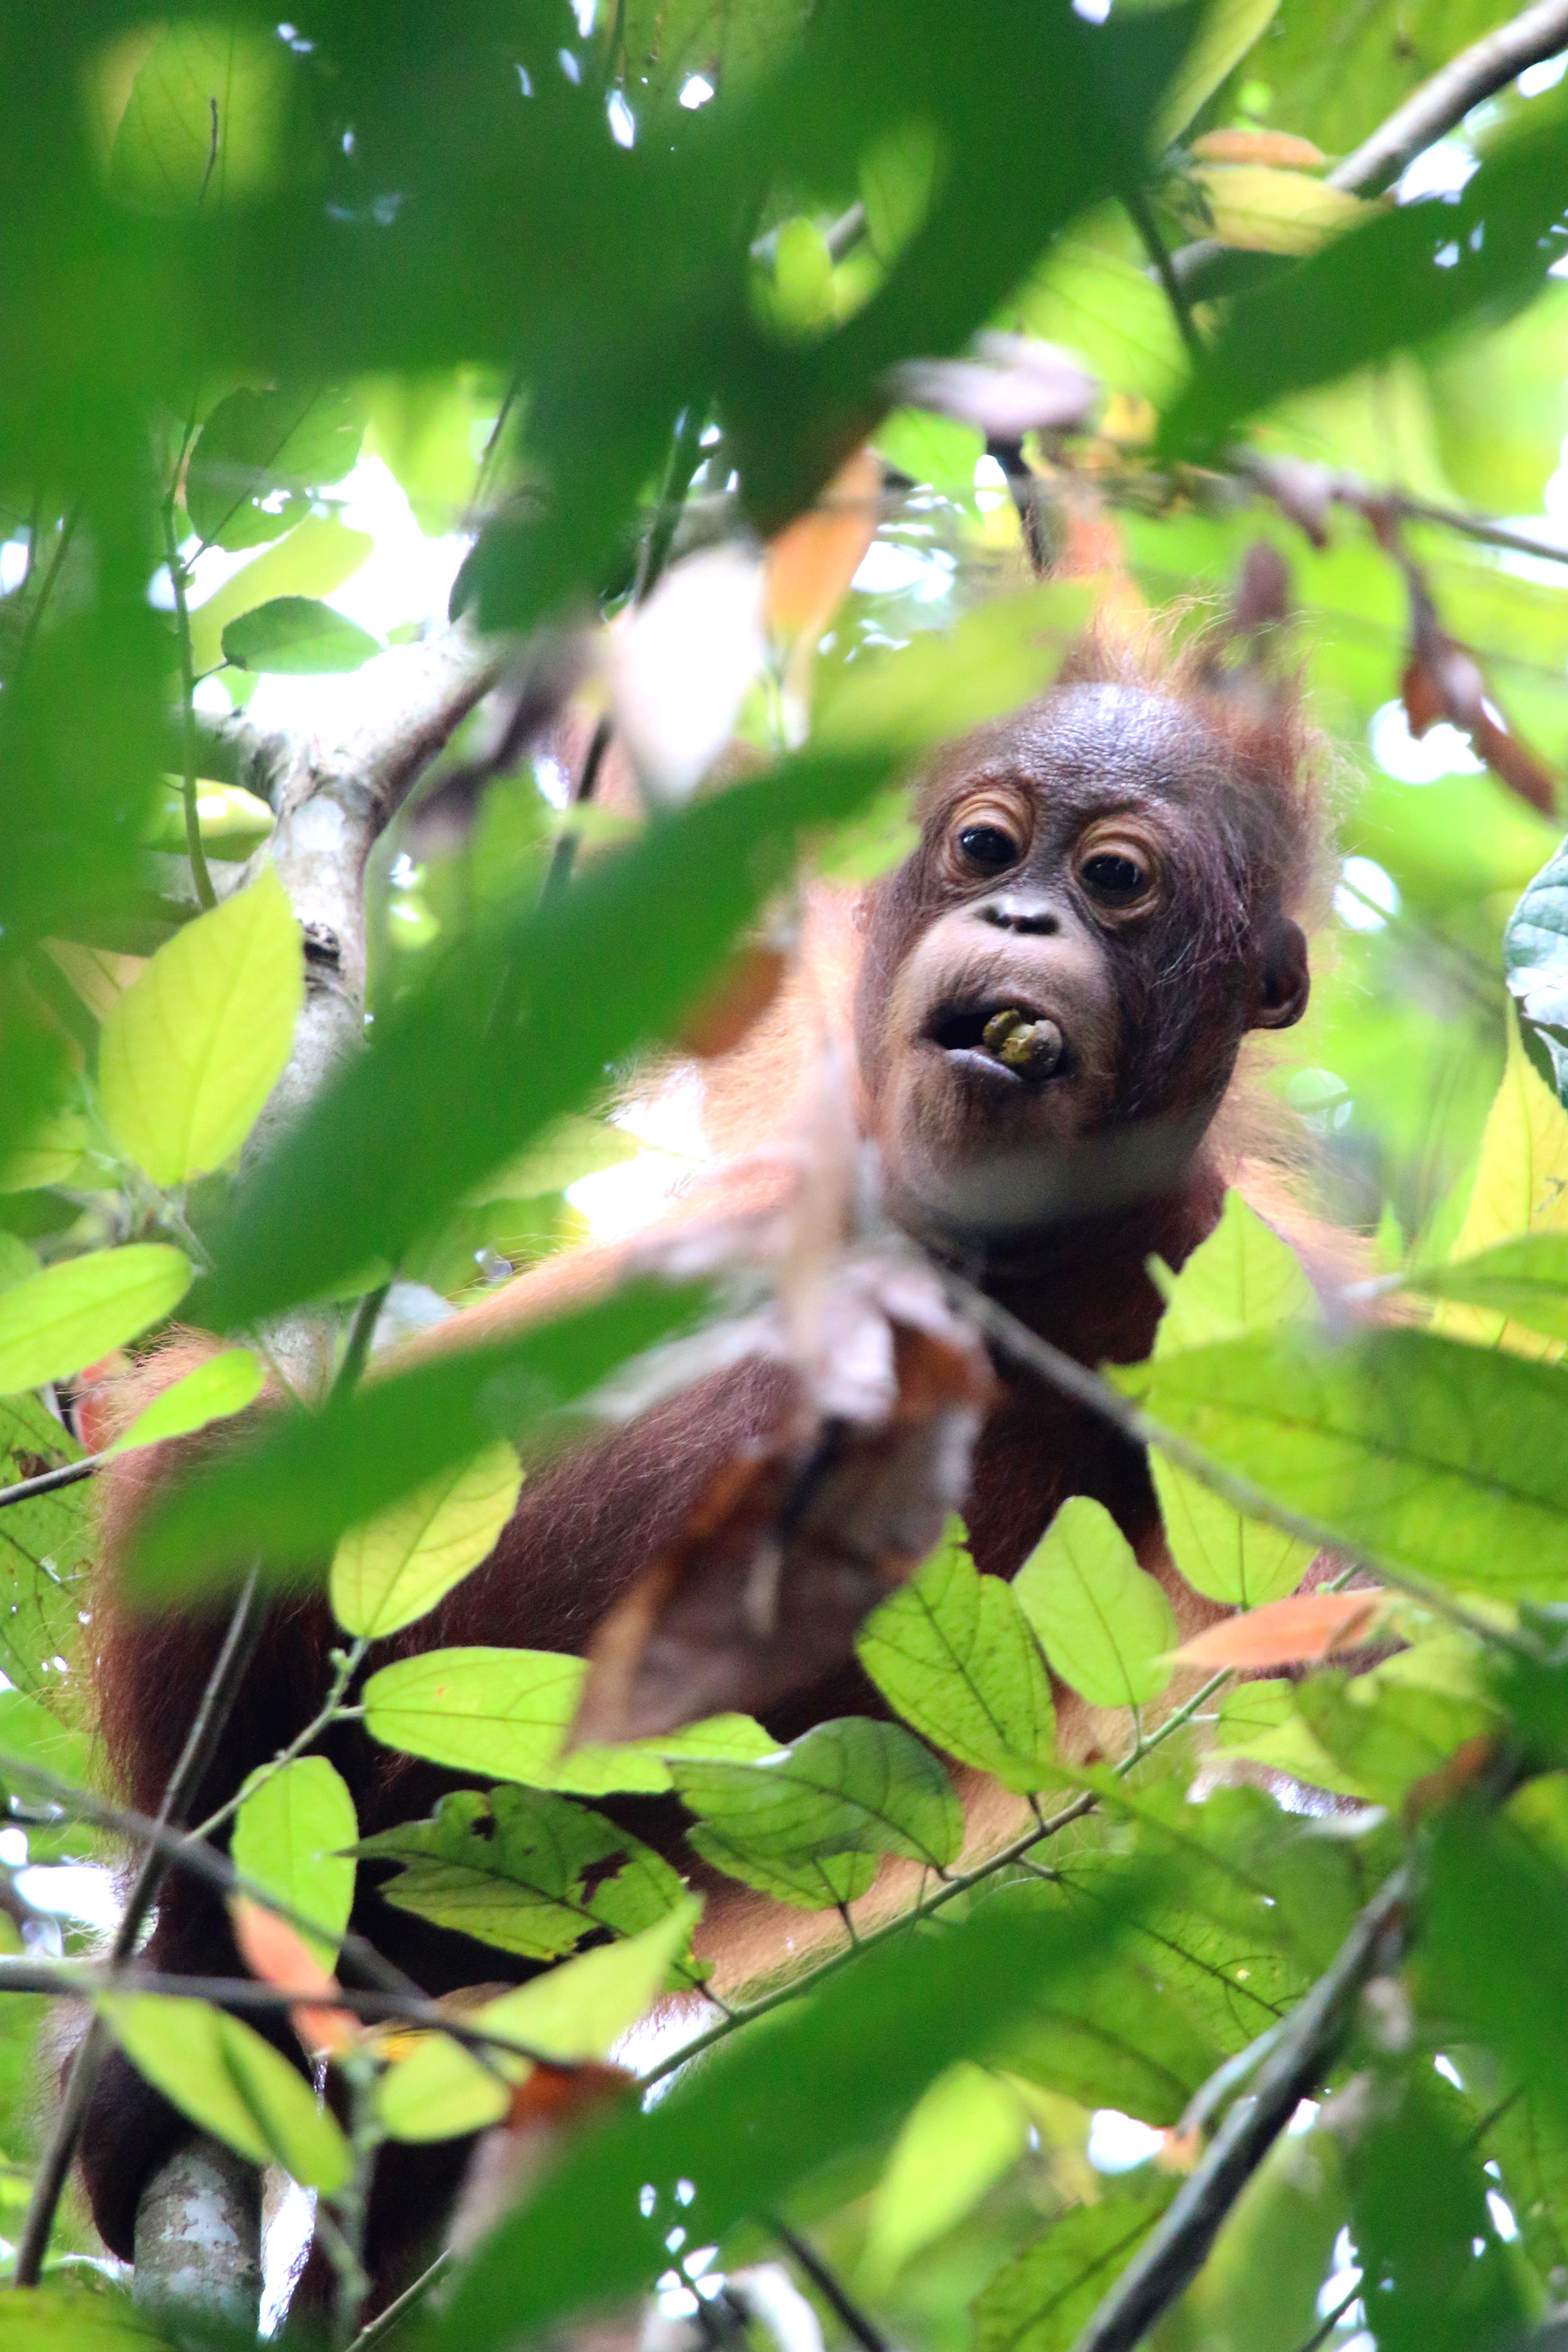 Orangutan baby feeding in Sabah rainforest (Photo by Stephen Chan)